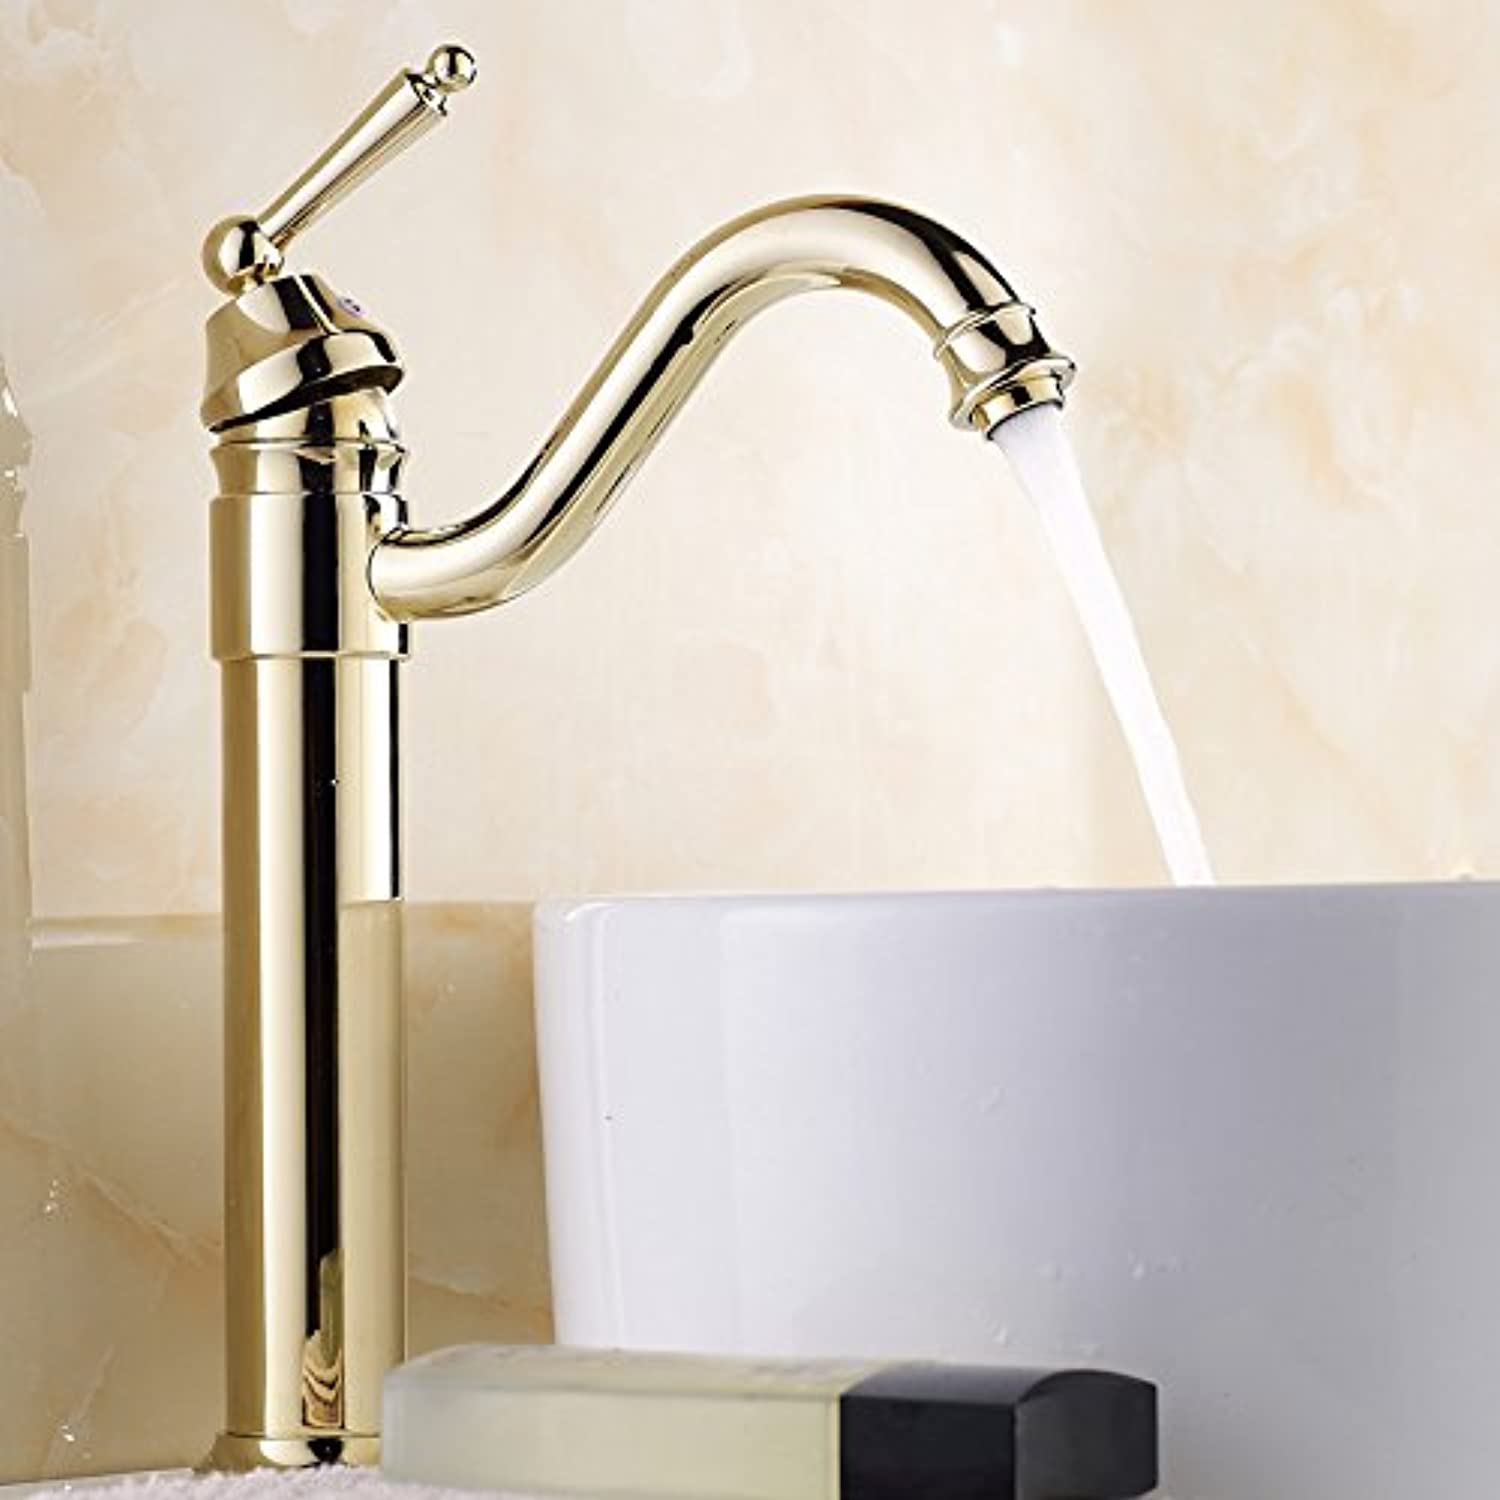 Hlluya Professional Sink Mixer Easy-to-gil basin full copper antique and cold water taps plus high single hole basin mixer console antique faucets and highlight the silver and the gold plated high